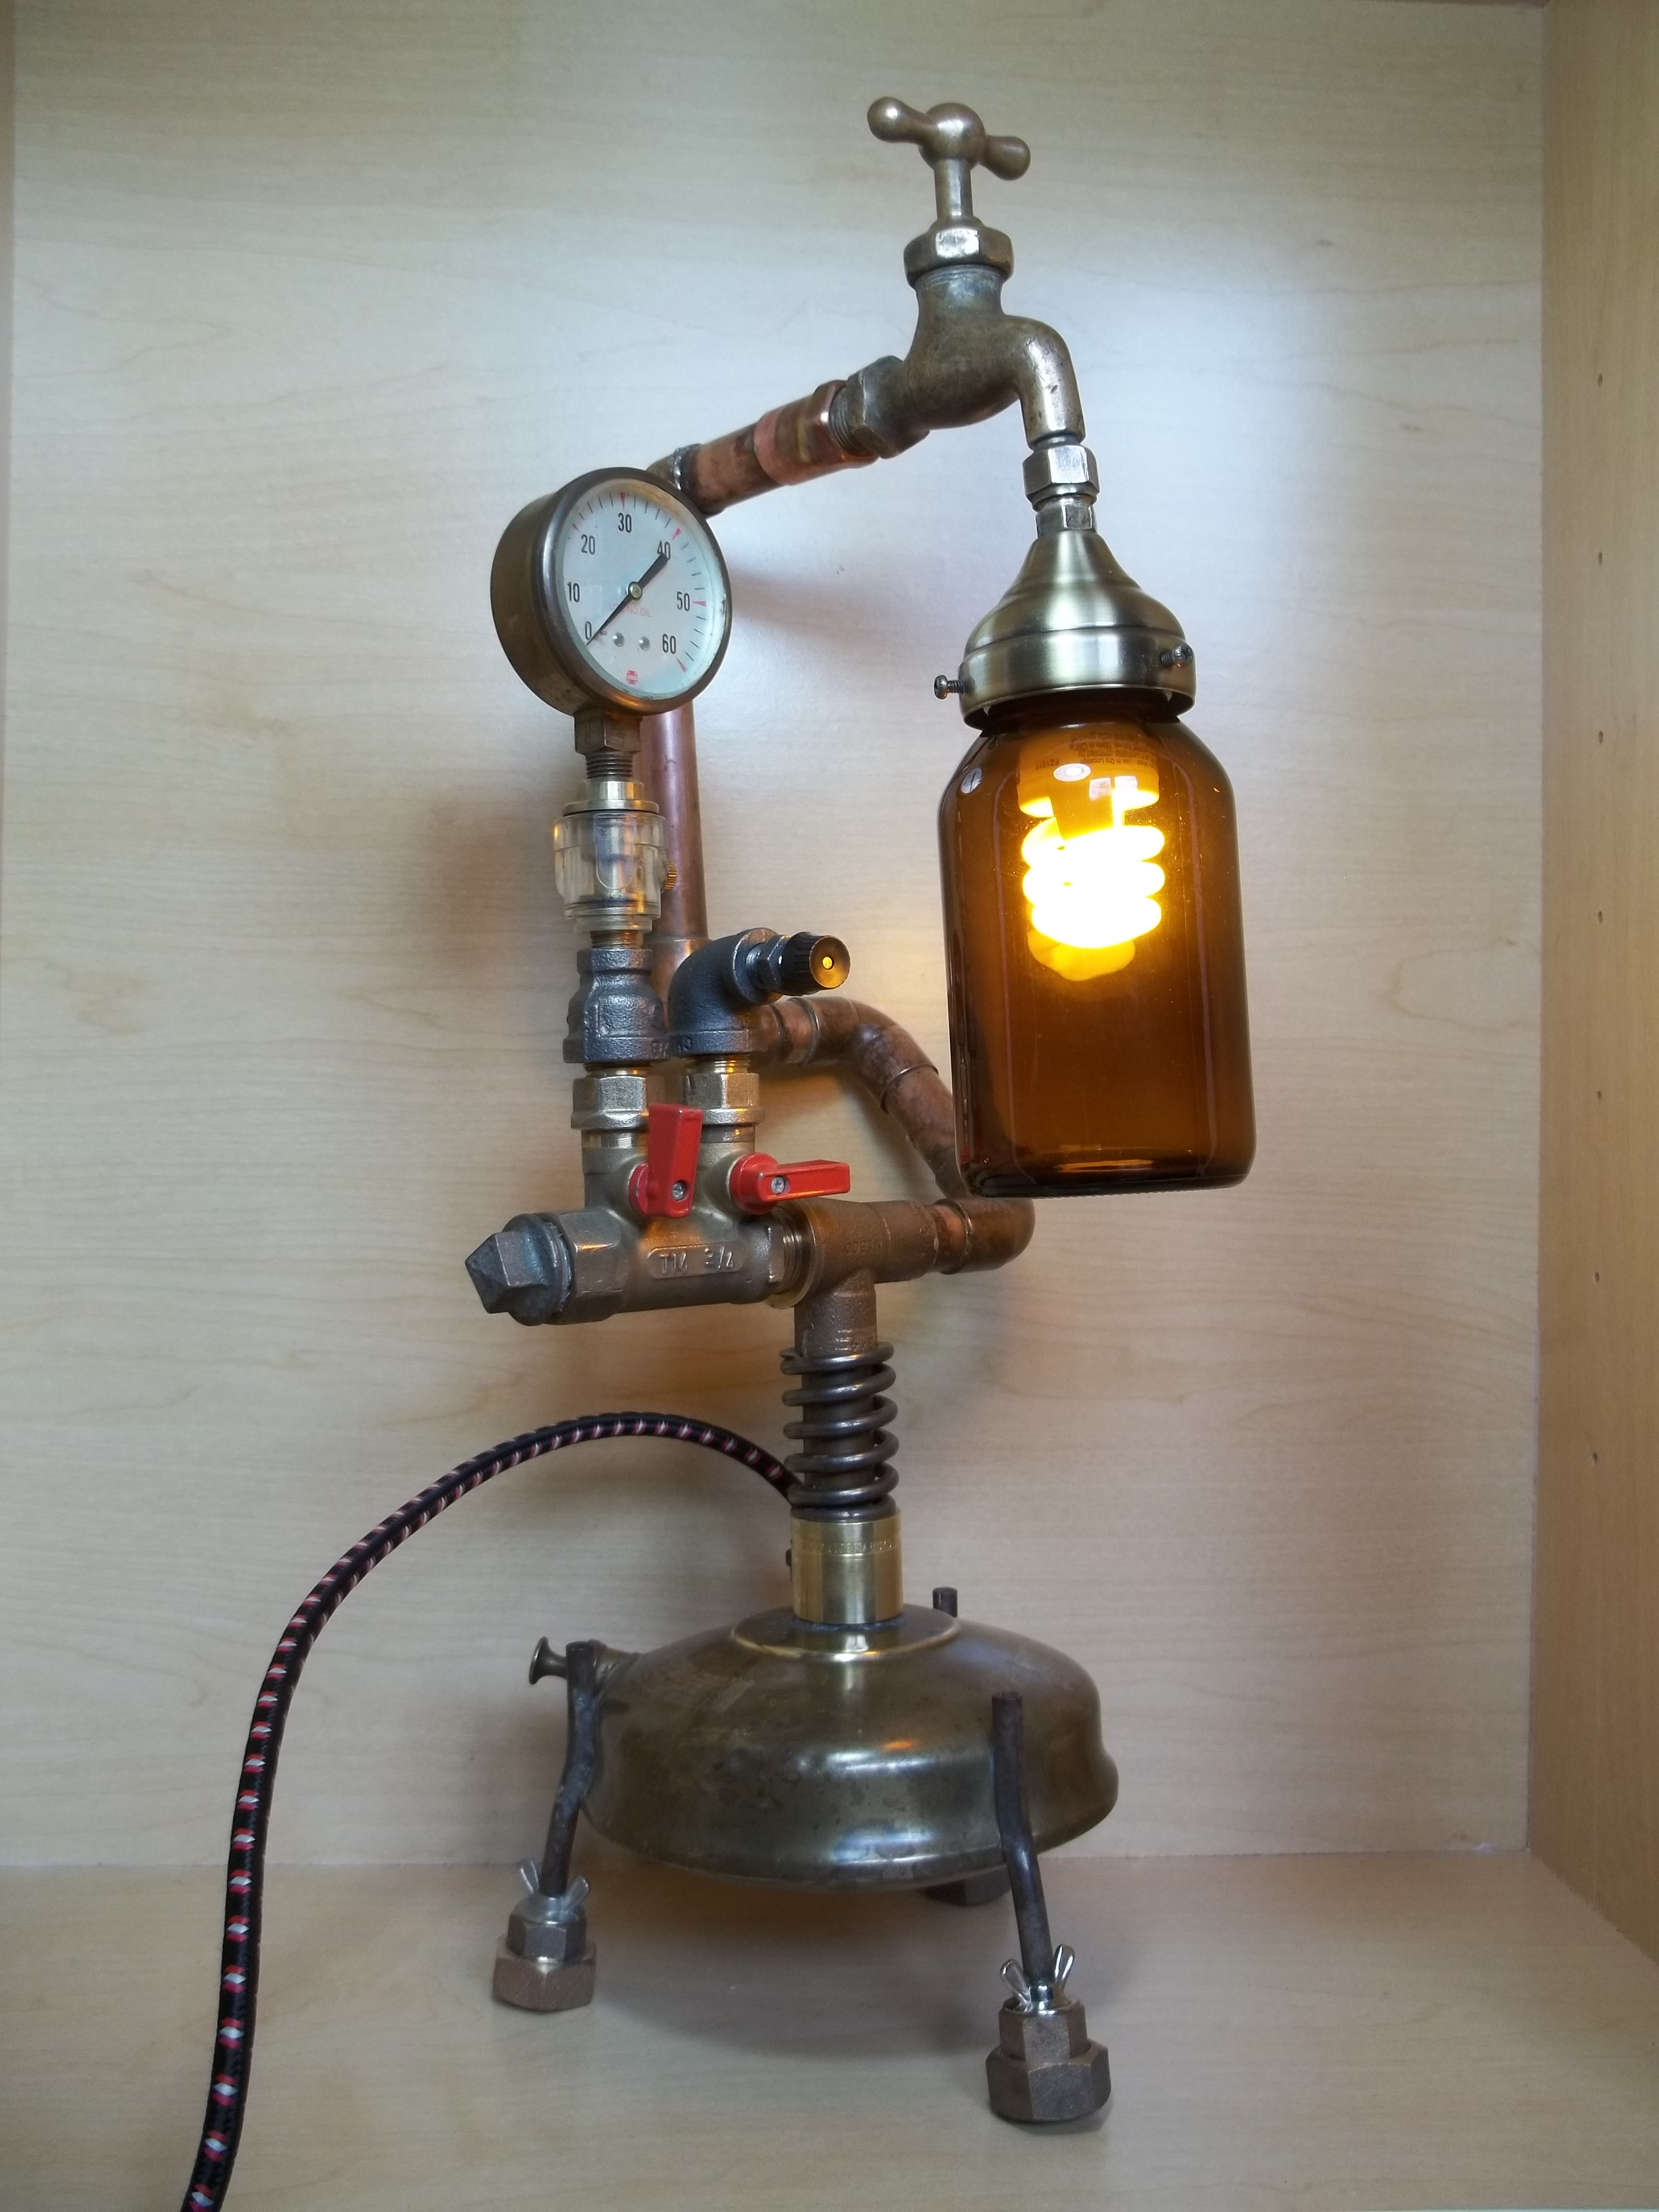 Recyclage Objet Détourné Repurposed Upcycled Recycled Industrial Vintage Water